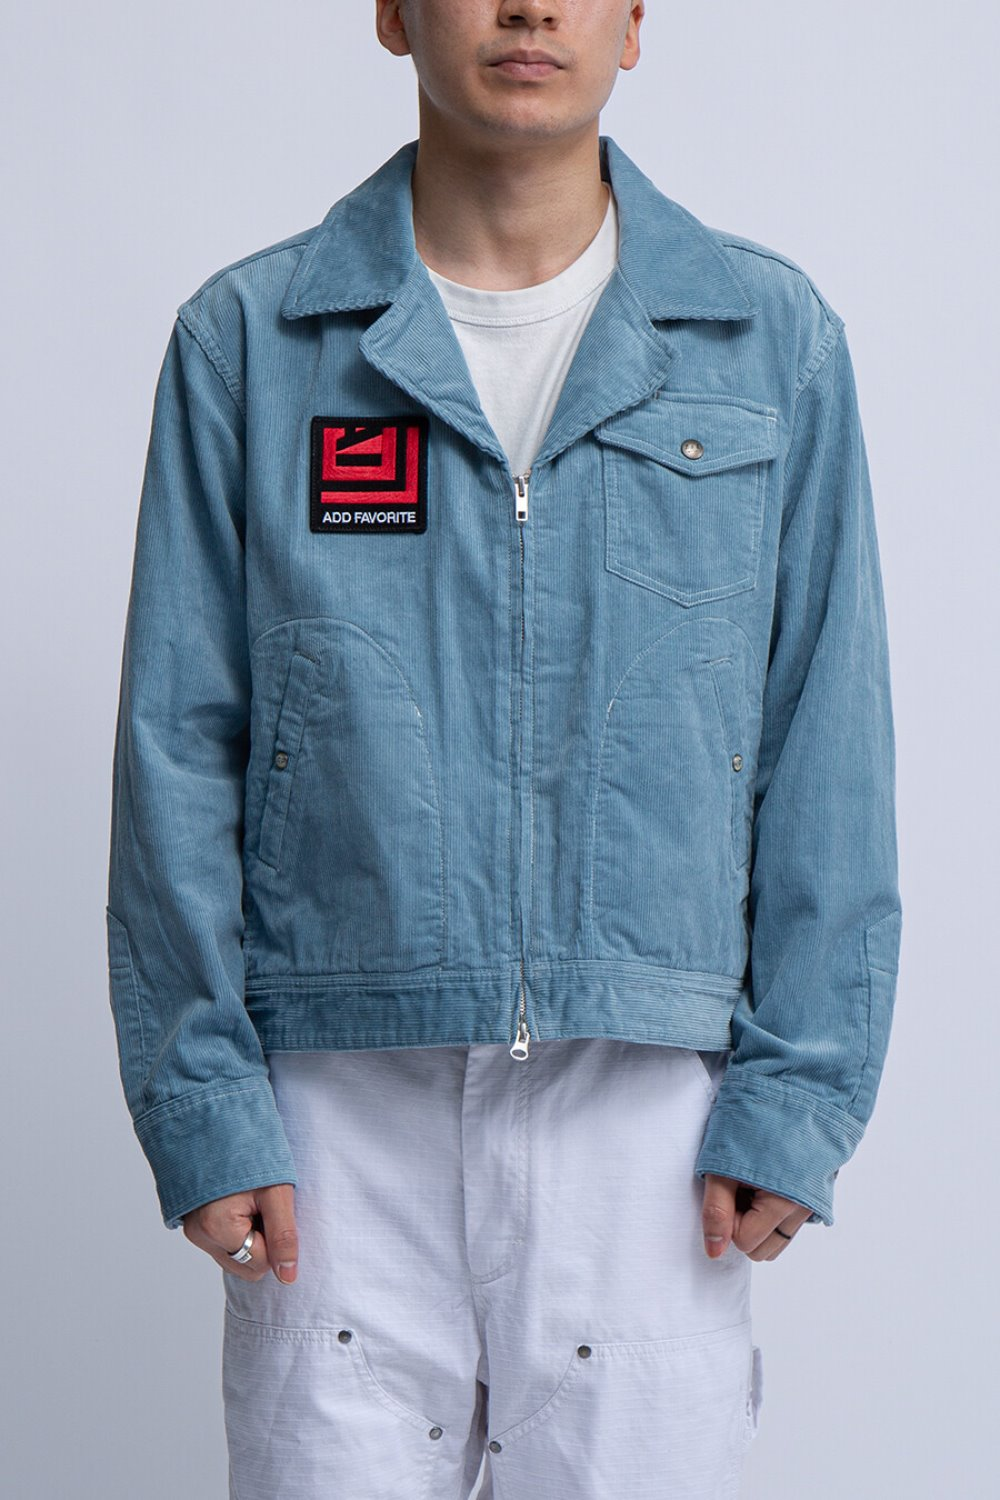 LTB JACKET LIGHT BLUE 14W CORDUROY